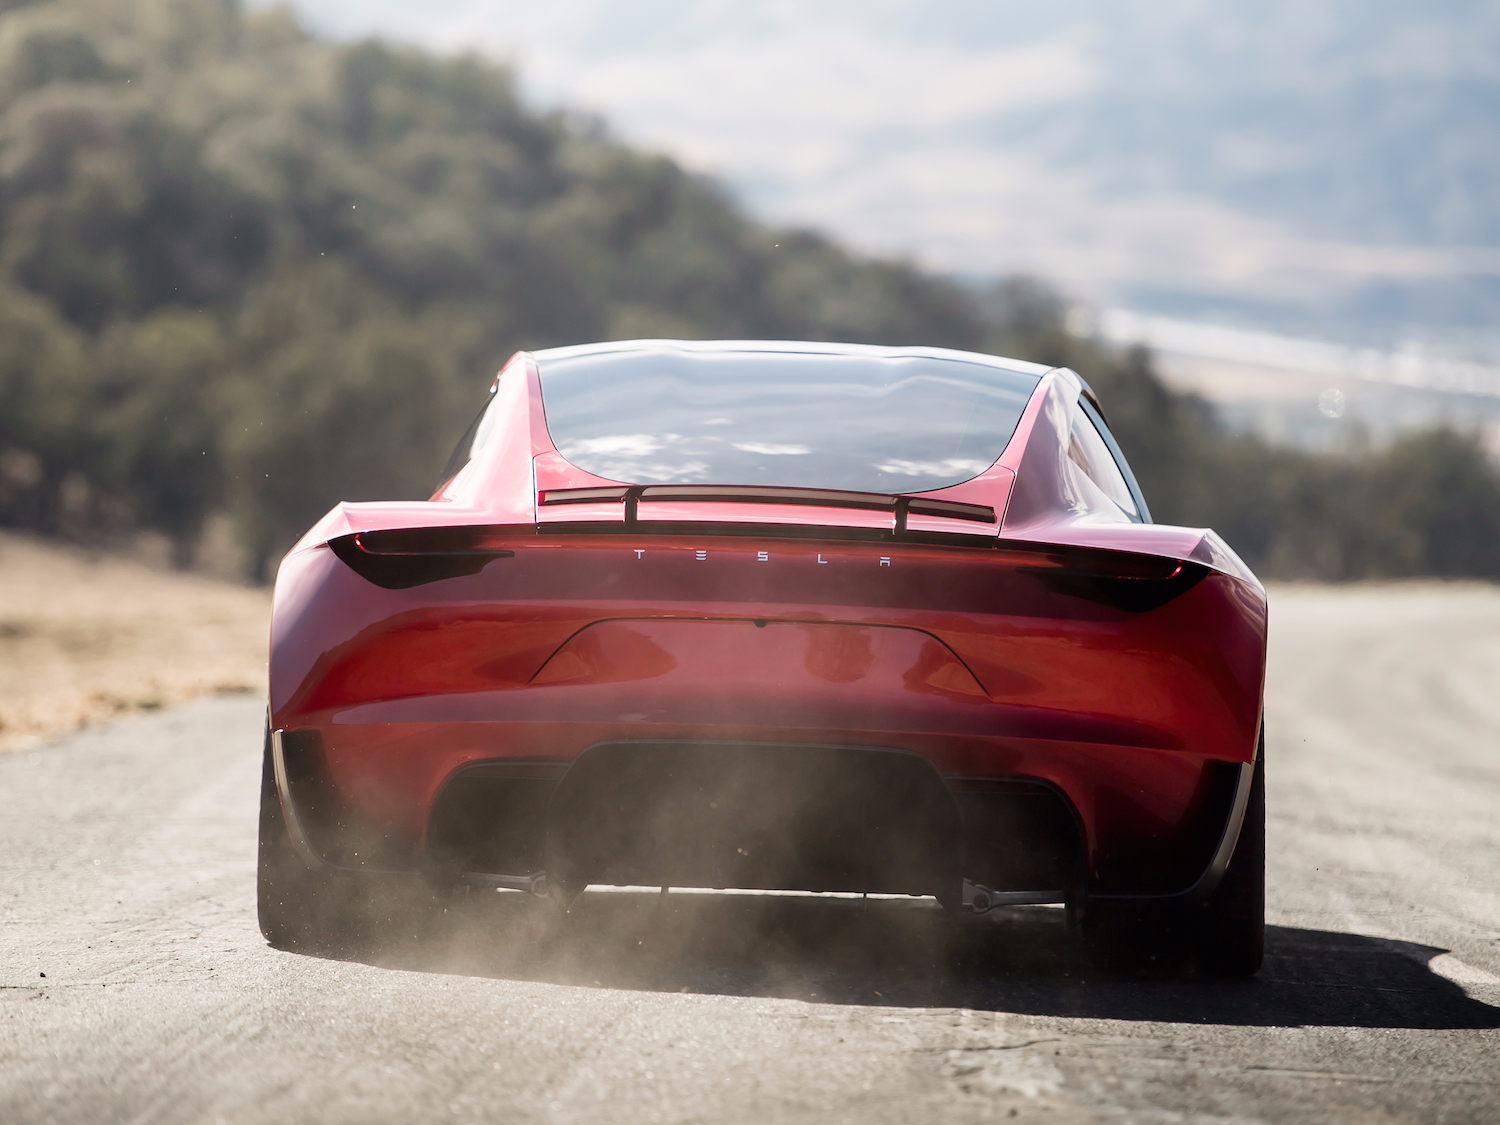 22 All New Tesla By 2020 Photos with Tesla By 2020